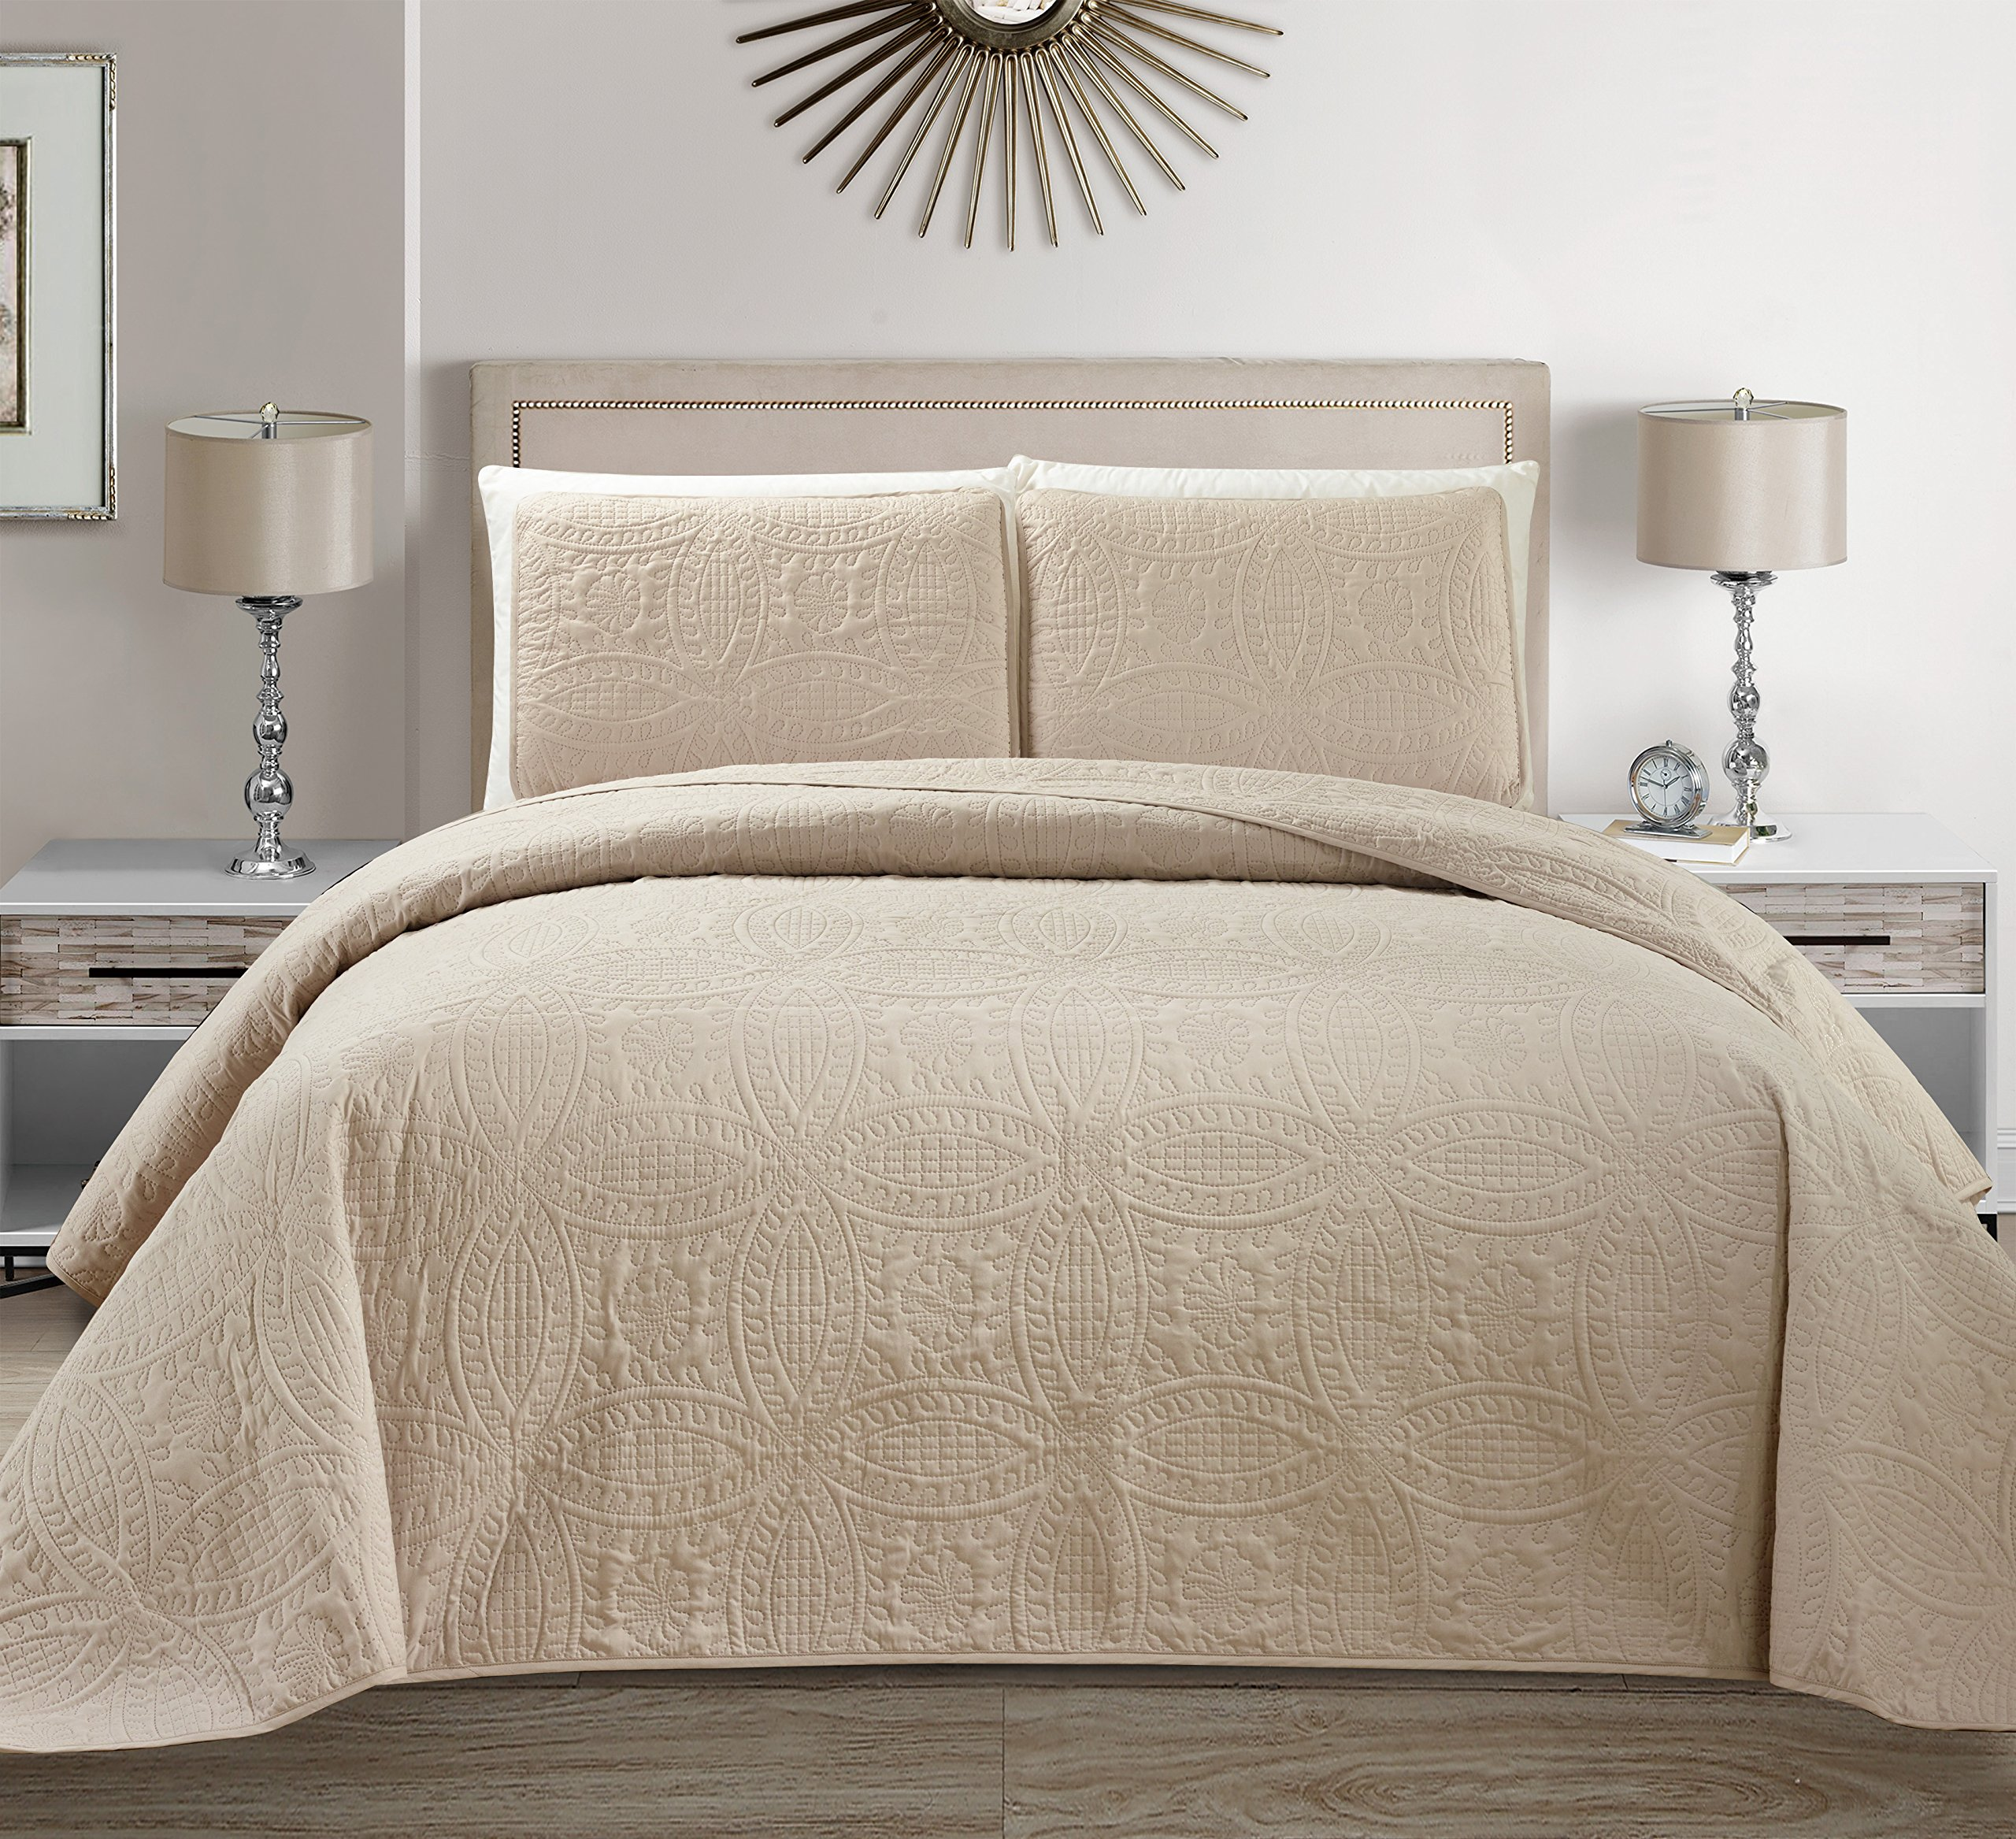 Mk Collection 3 pc Solid Embossed Bedspread Bed-cover Over Size Beige/Khaki New King/California King Over Size 118'' x106''